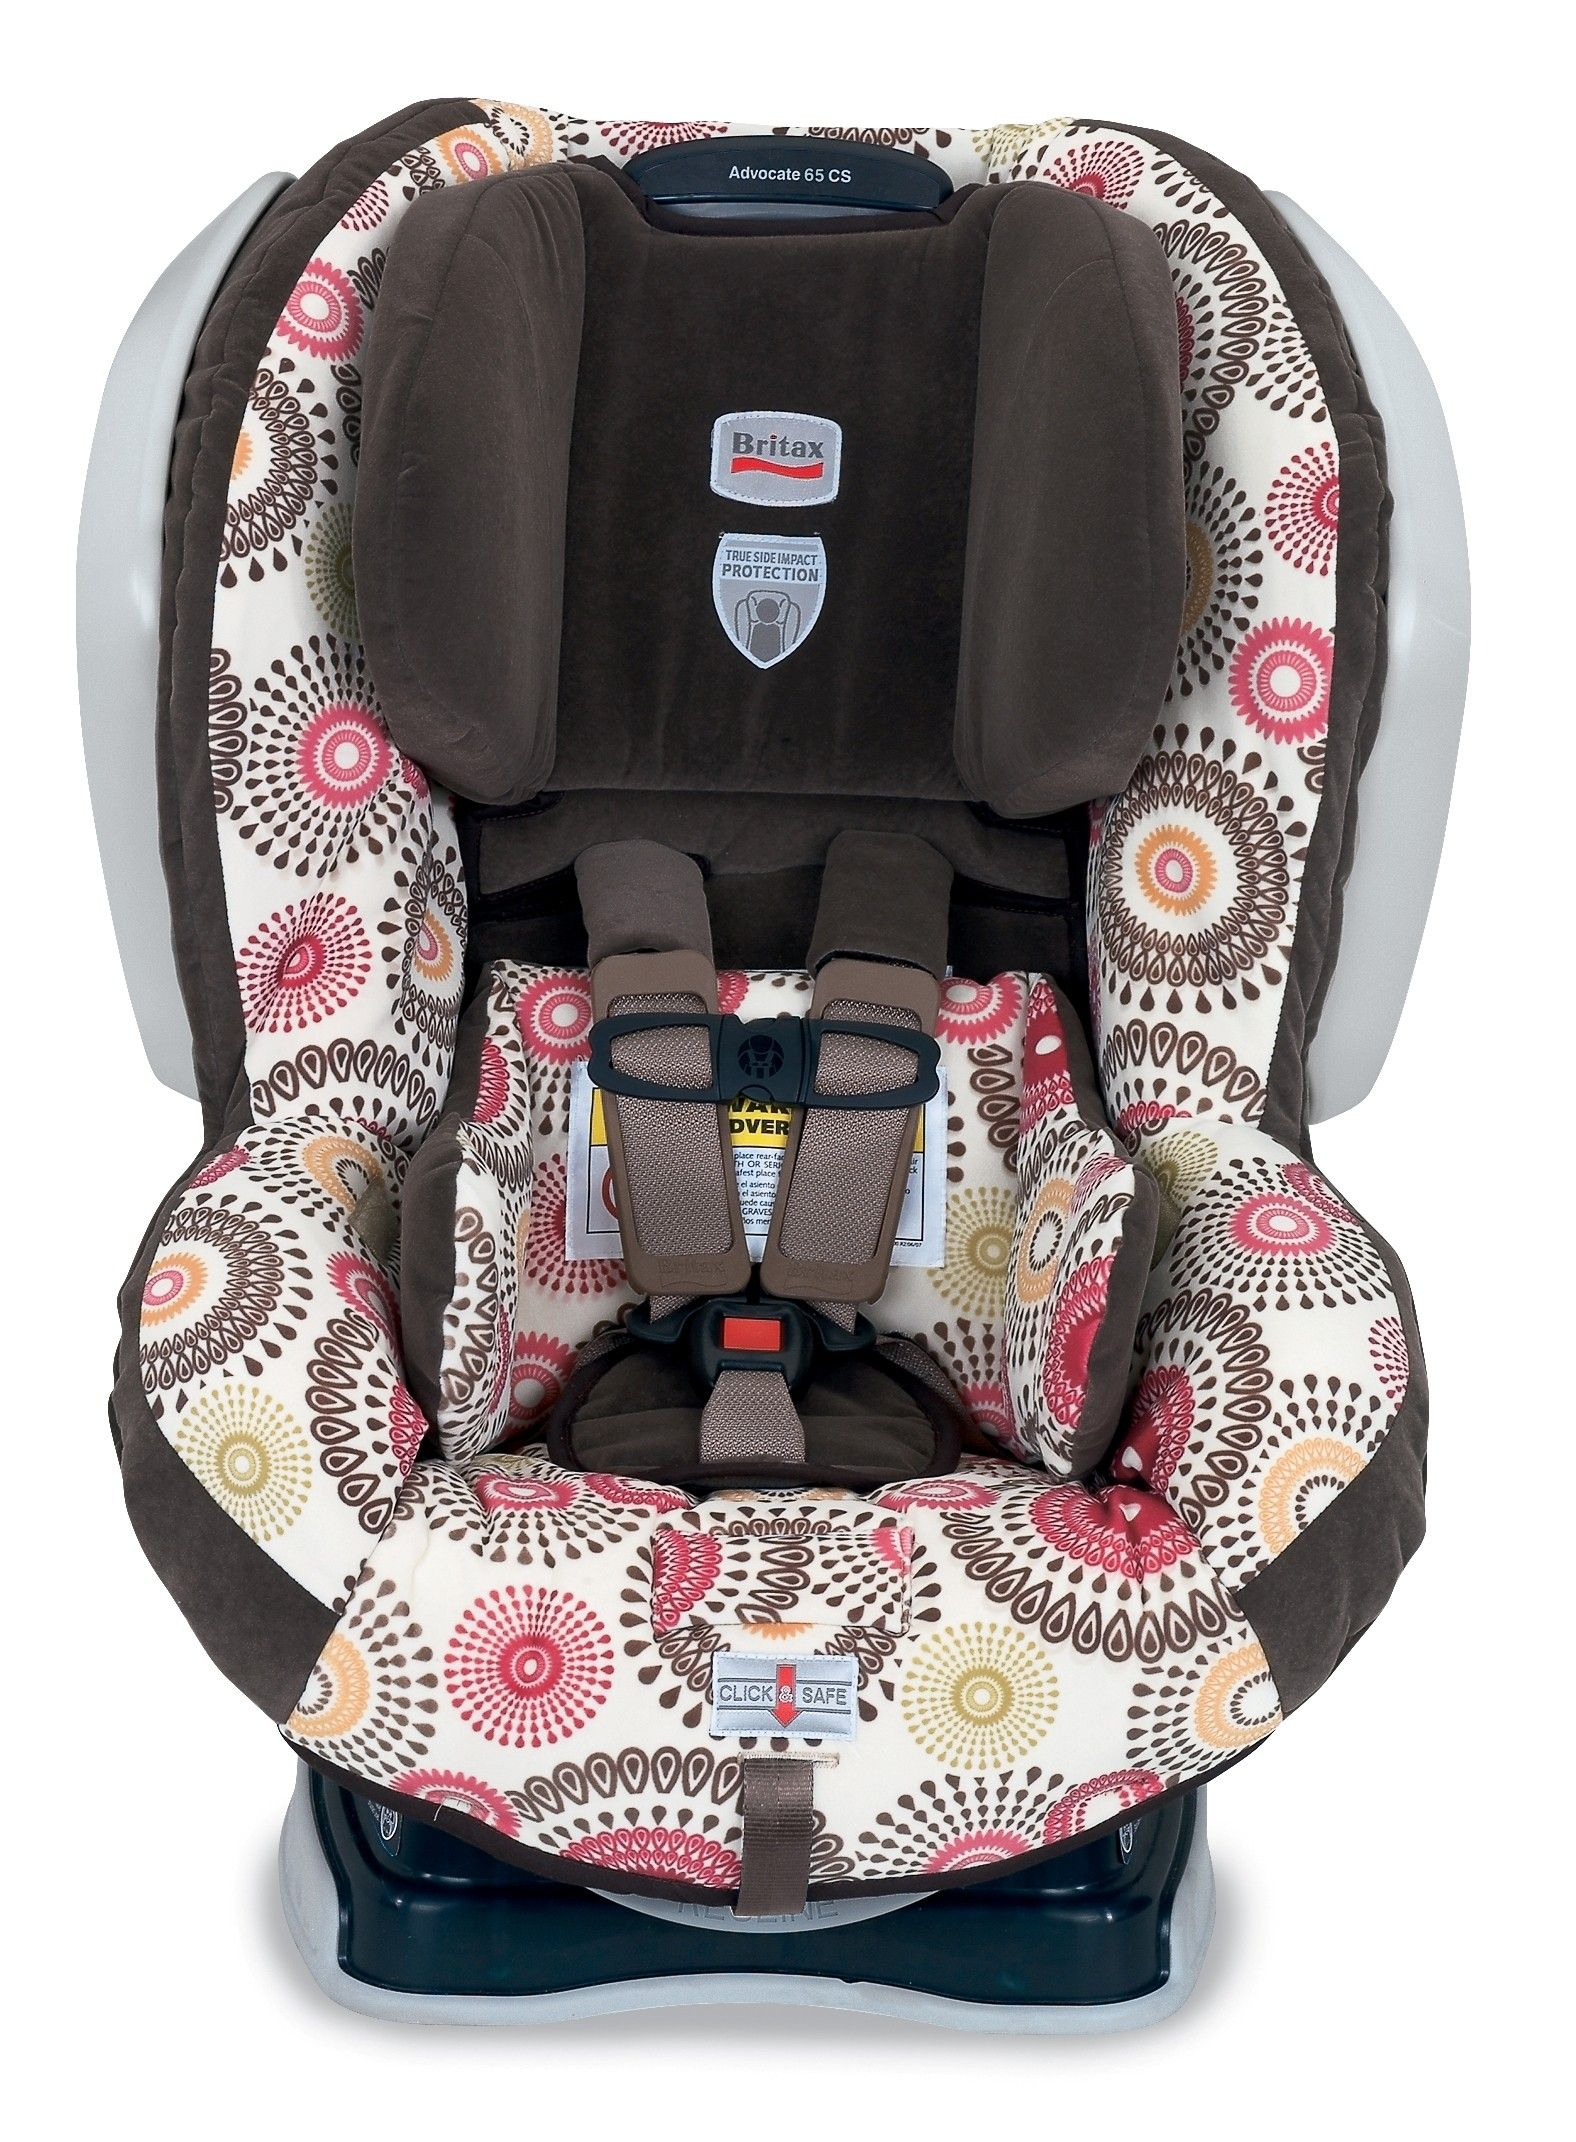 Awesome car seat car seats baby car seats best